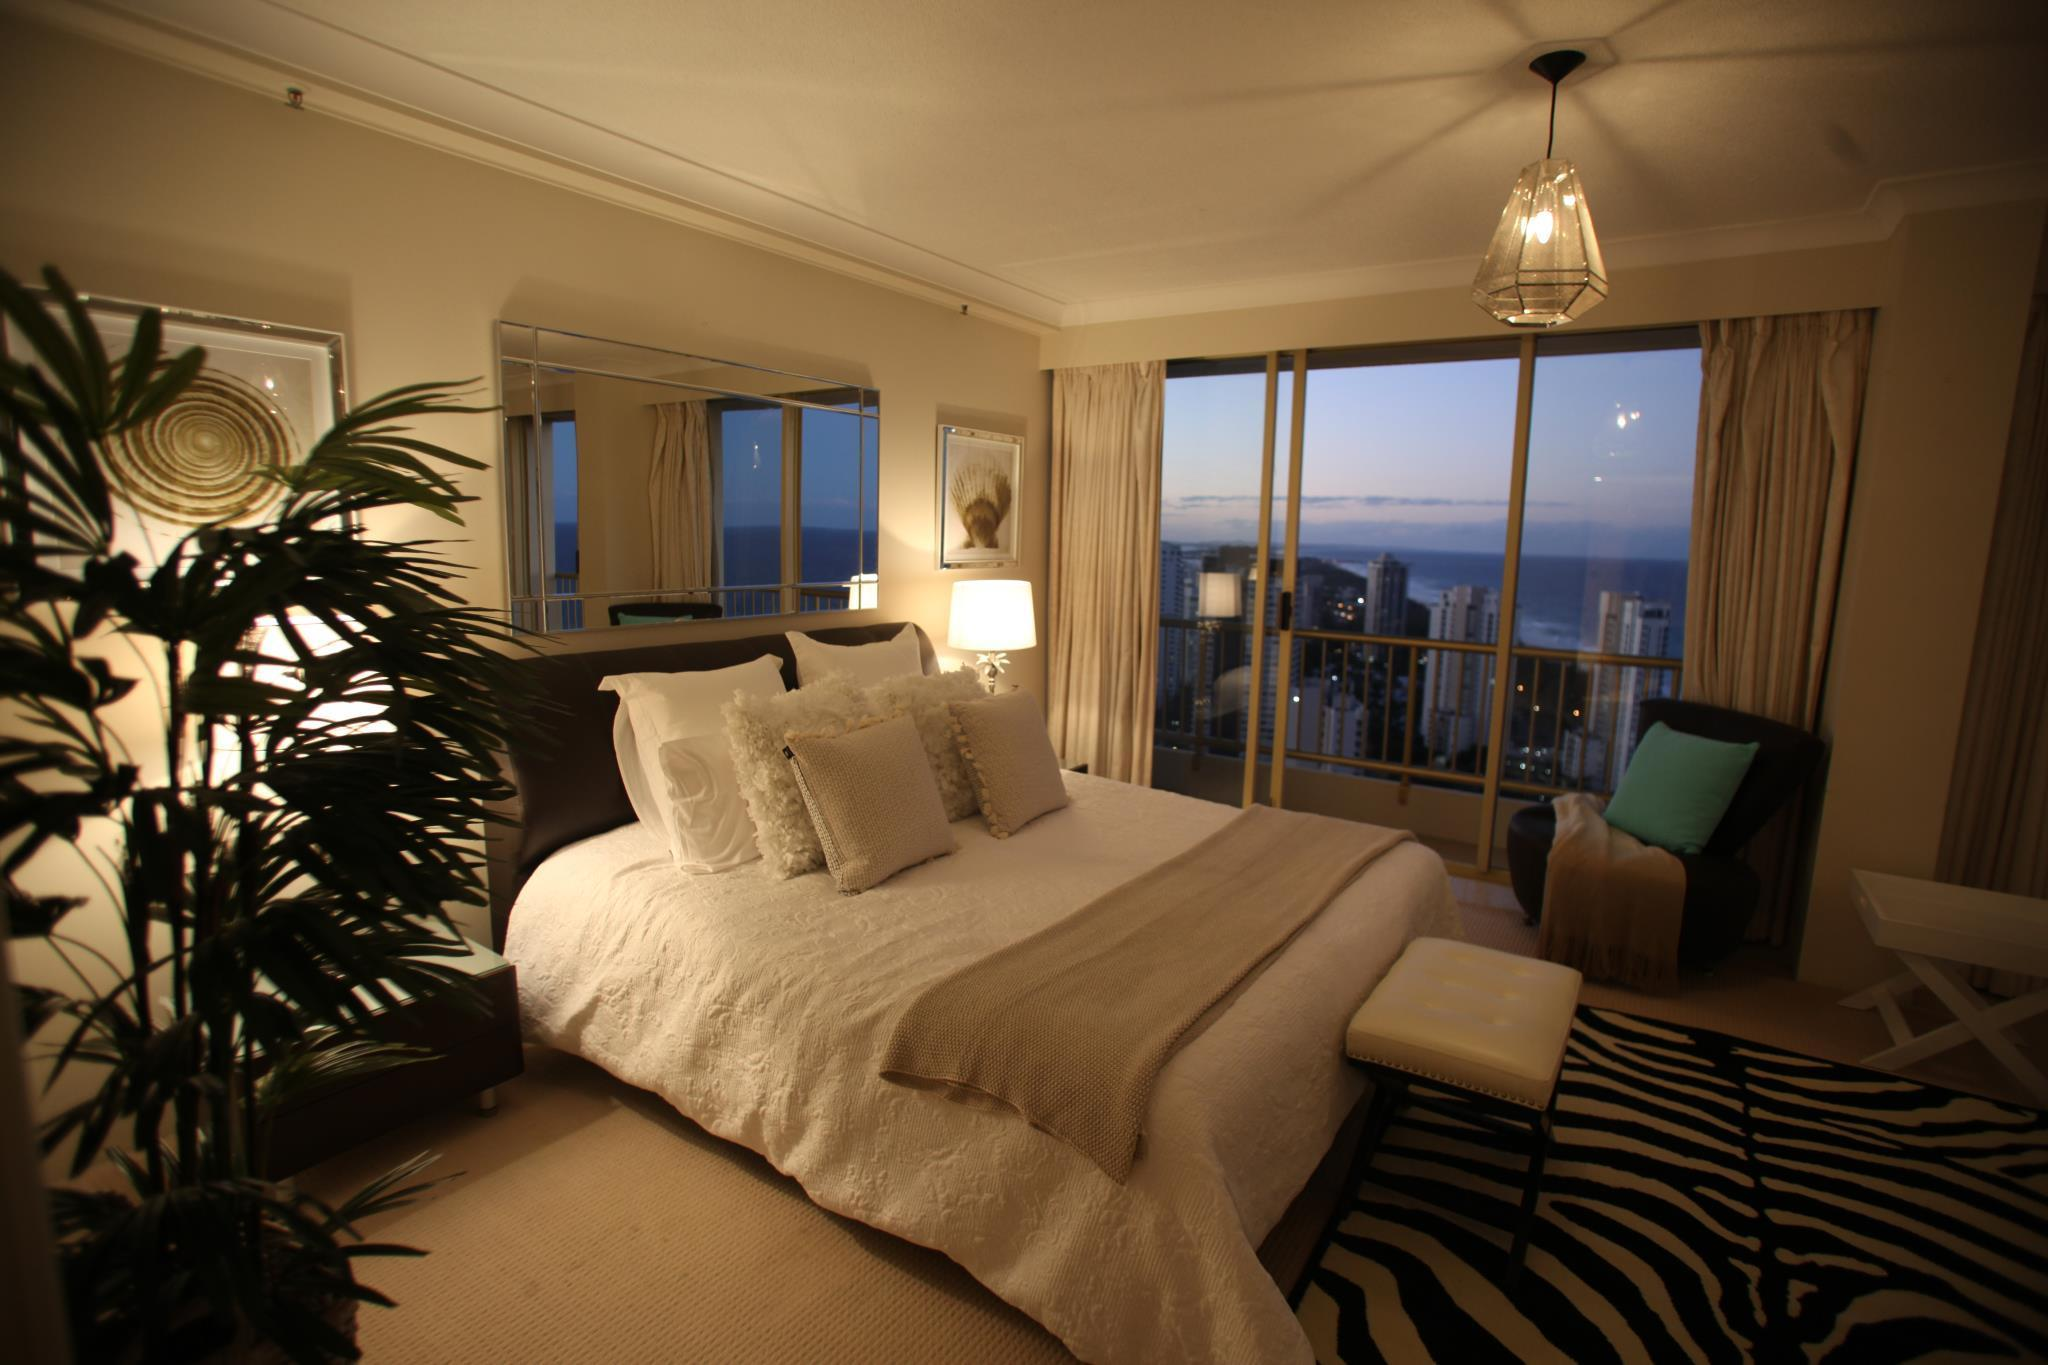 Gold Coast Amor'e Luxury Sub Penthouse at Contessa, Main Beach-South Stradbroke